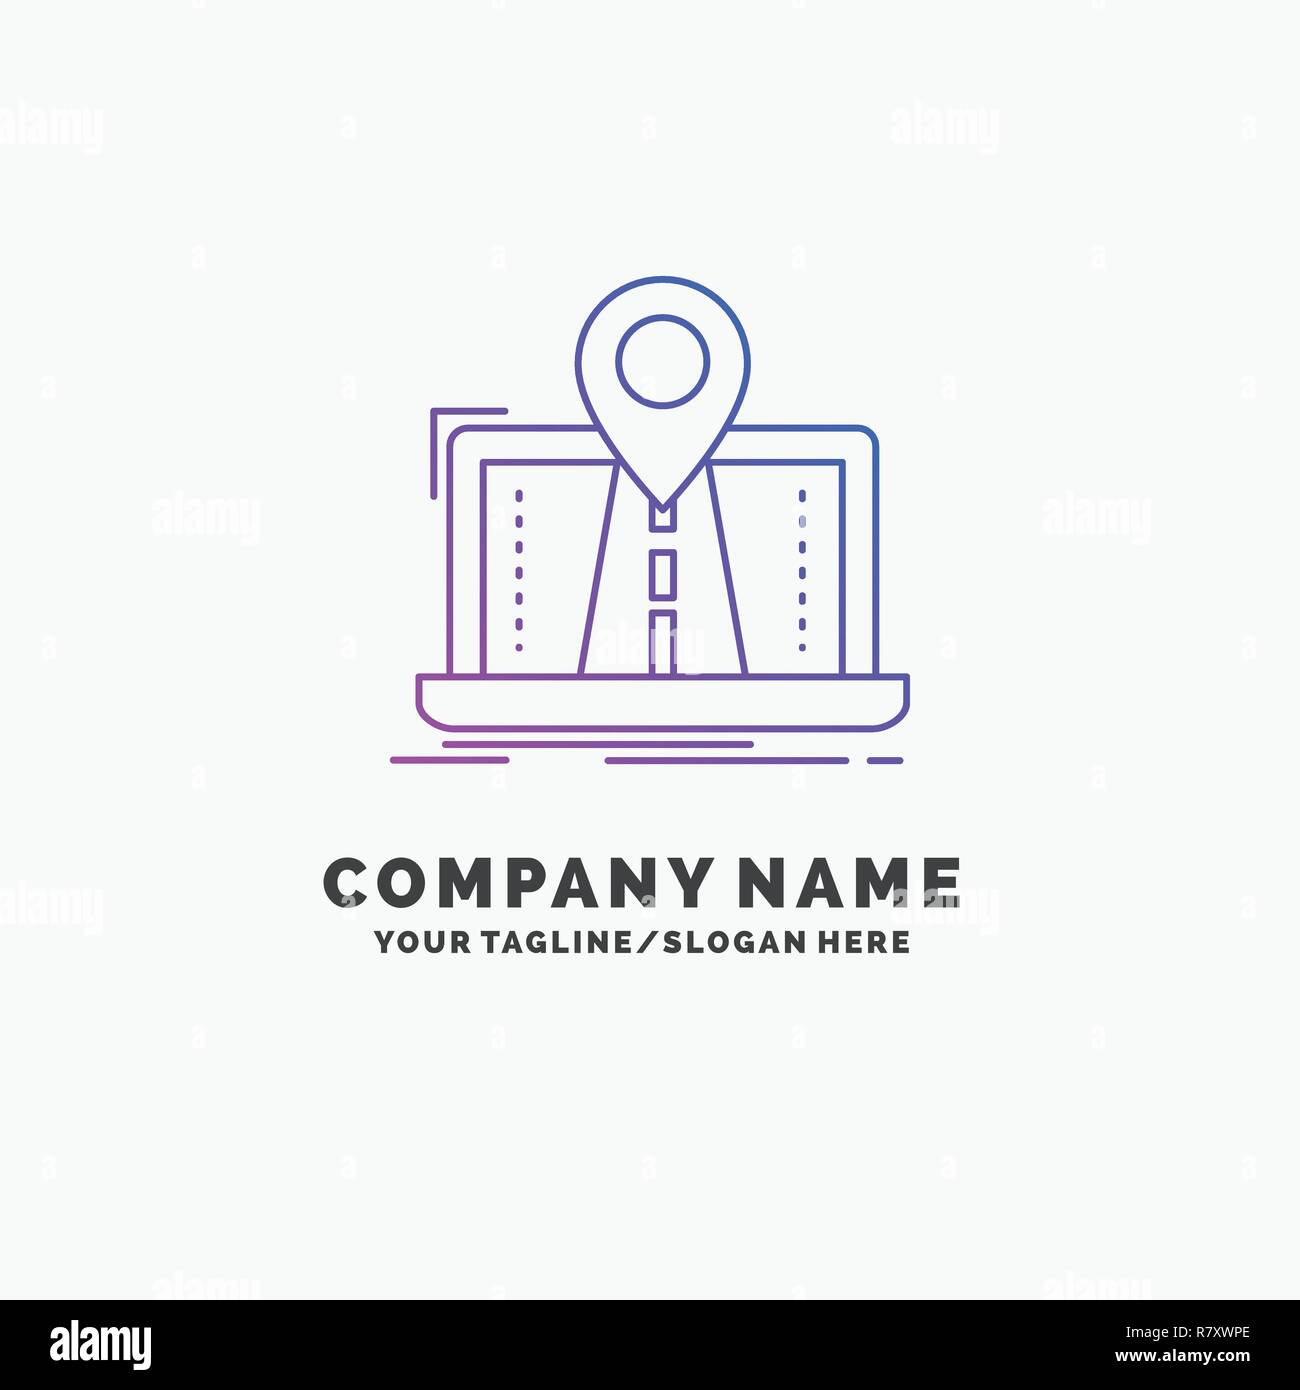 Navigation, Map, System, GPS, Route Purple Business Logo Template. Place for Tagline Stock Vector